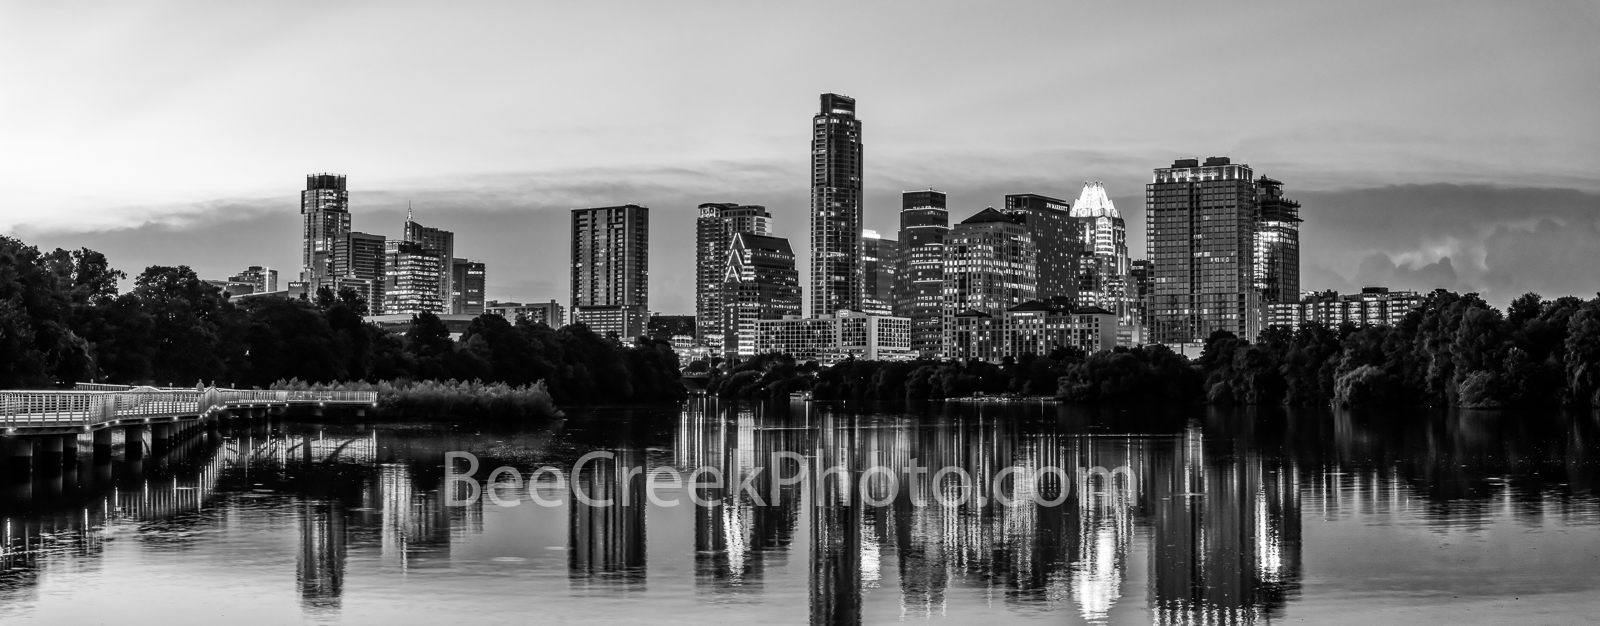 Twilight Over Austin Skyline Pano BW - Another colorful capture of the Austin Skyline just as twilight is approaching with just...